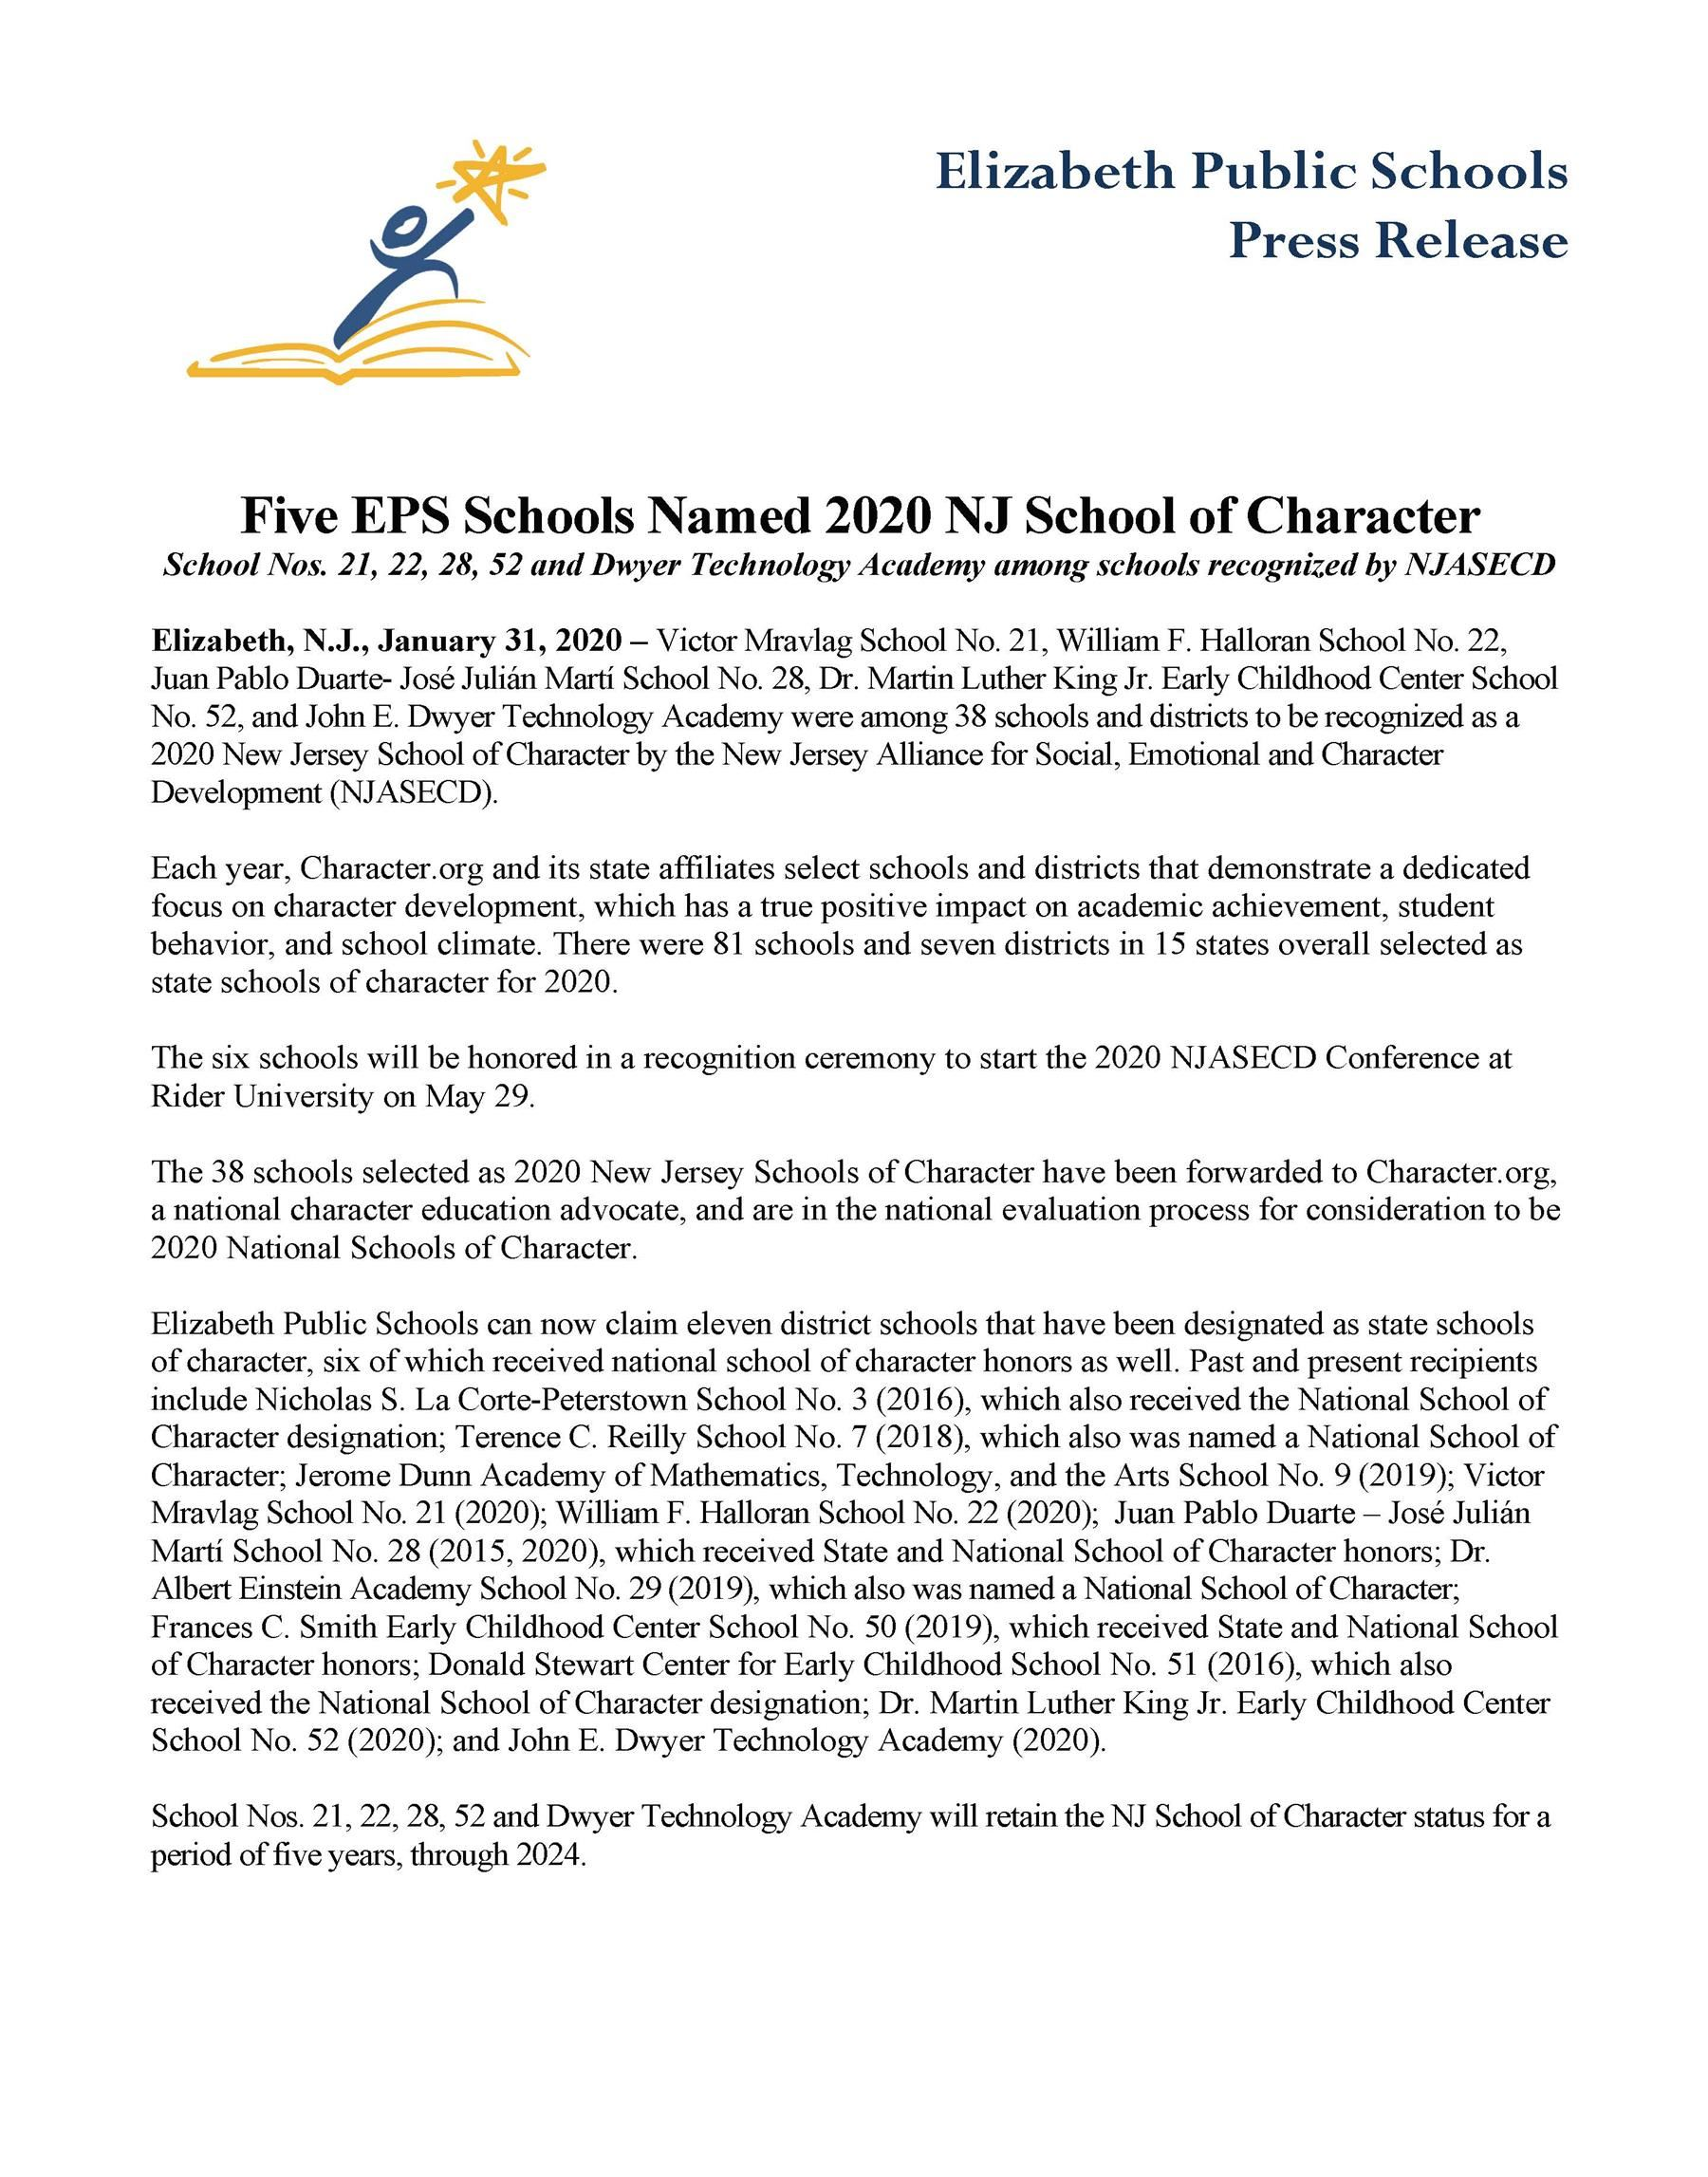 Five EPS Schools Named 2020 NJ School of Character